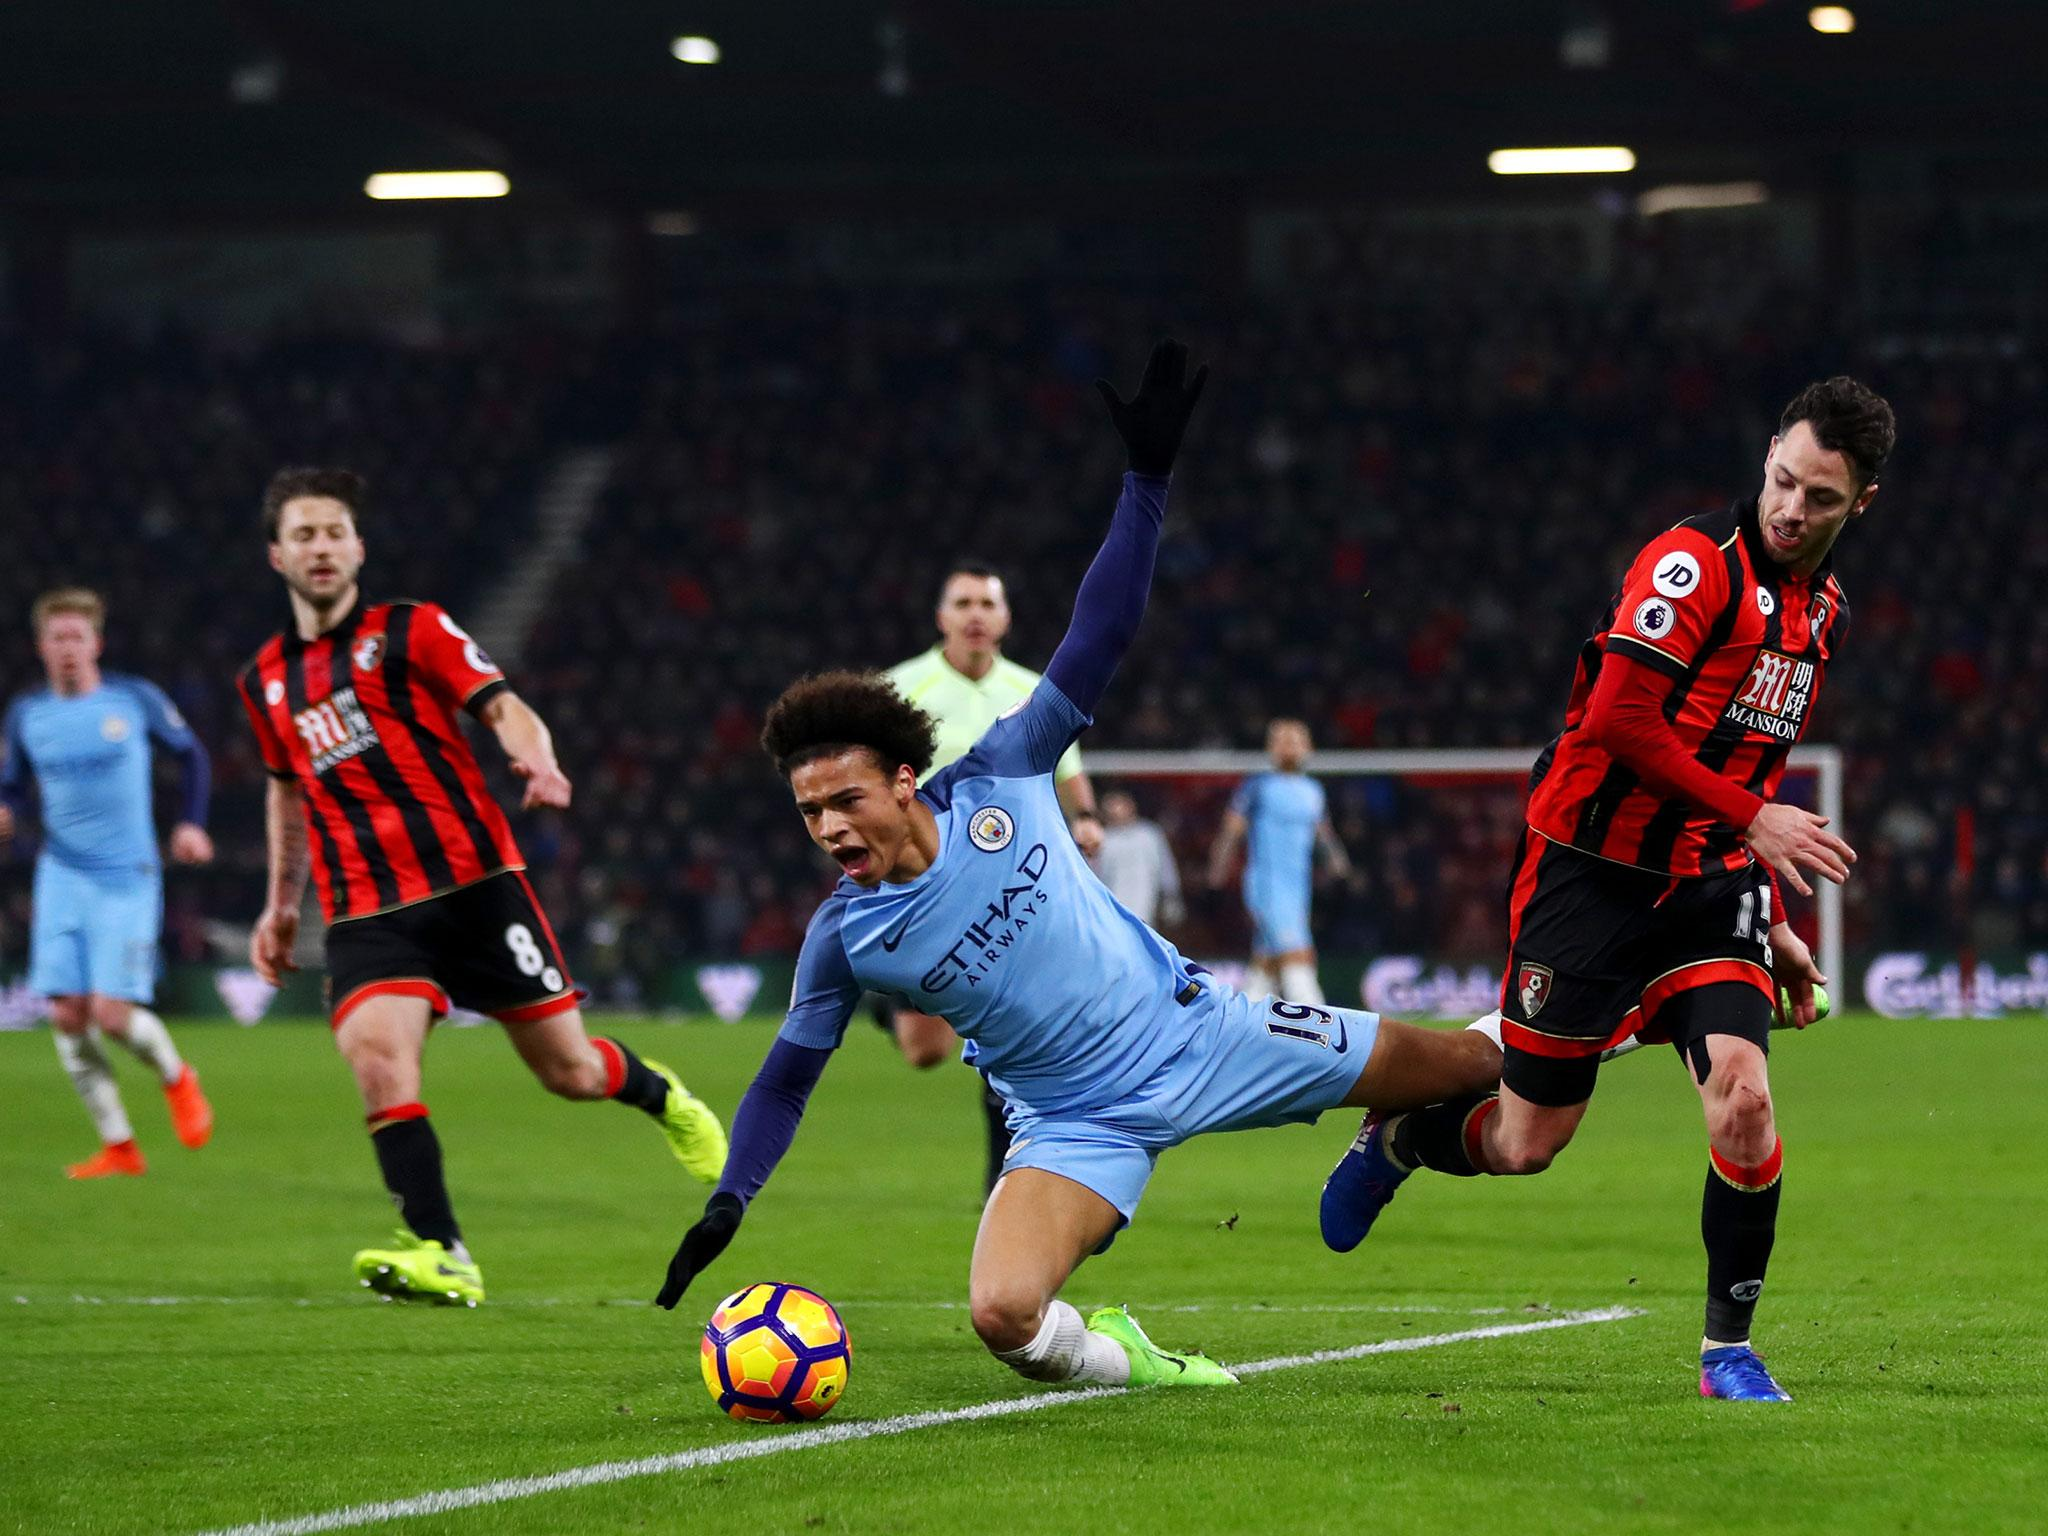 bournemouth vs man city - HD 2048×1536